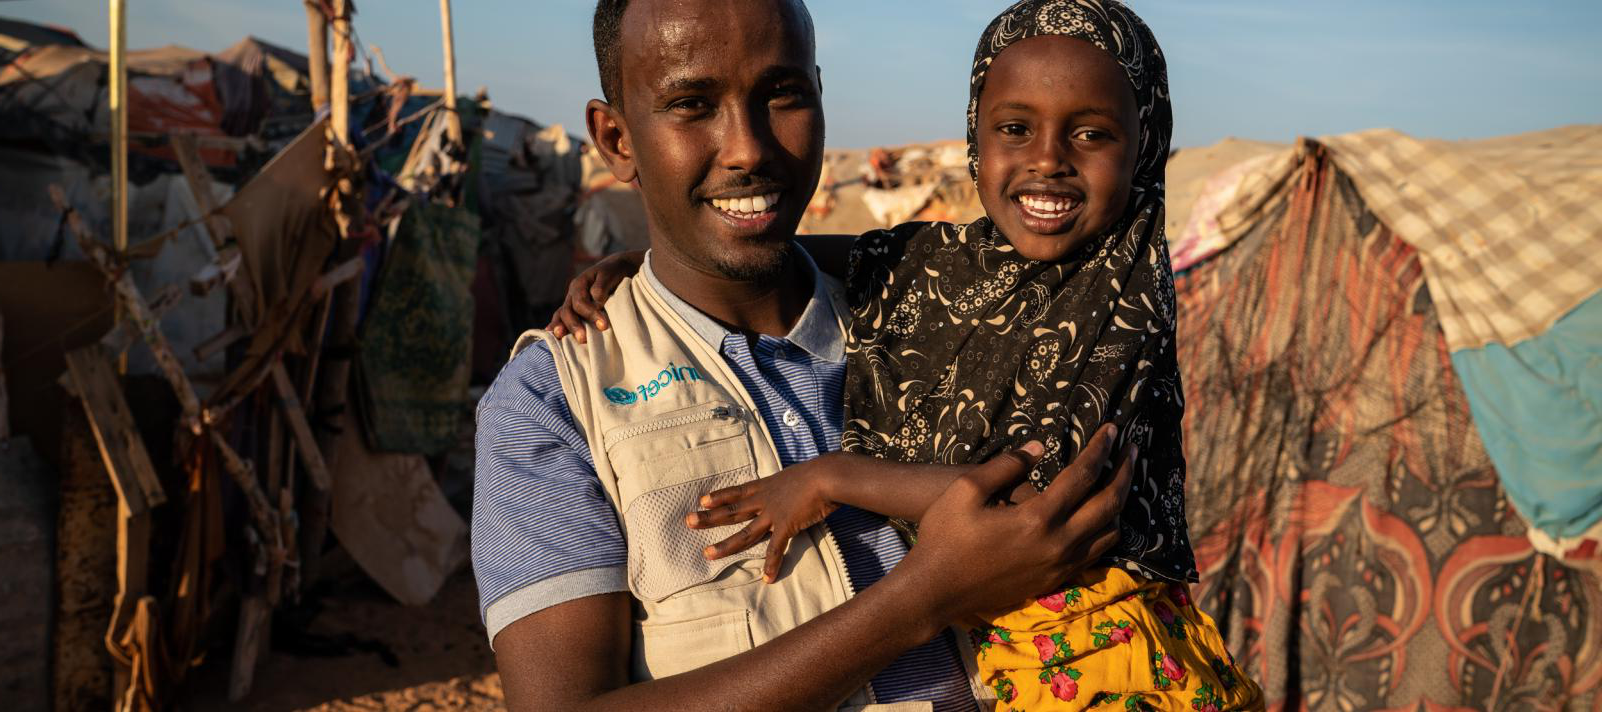 On 10 December 2018 in Somalia, UNICEF Child Protection Officer Ahmed Osman Adam speaks with a girl who lives in an IDP camp in Garowe.